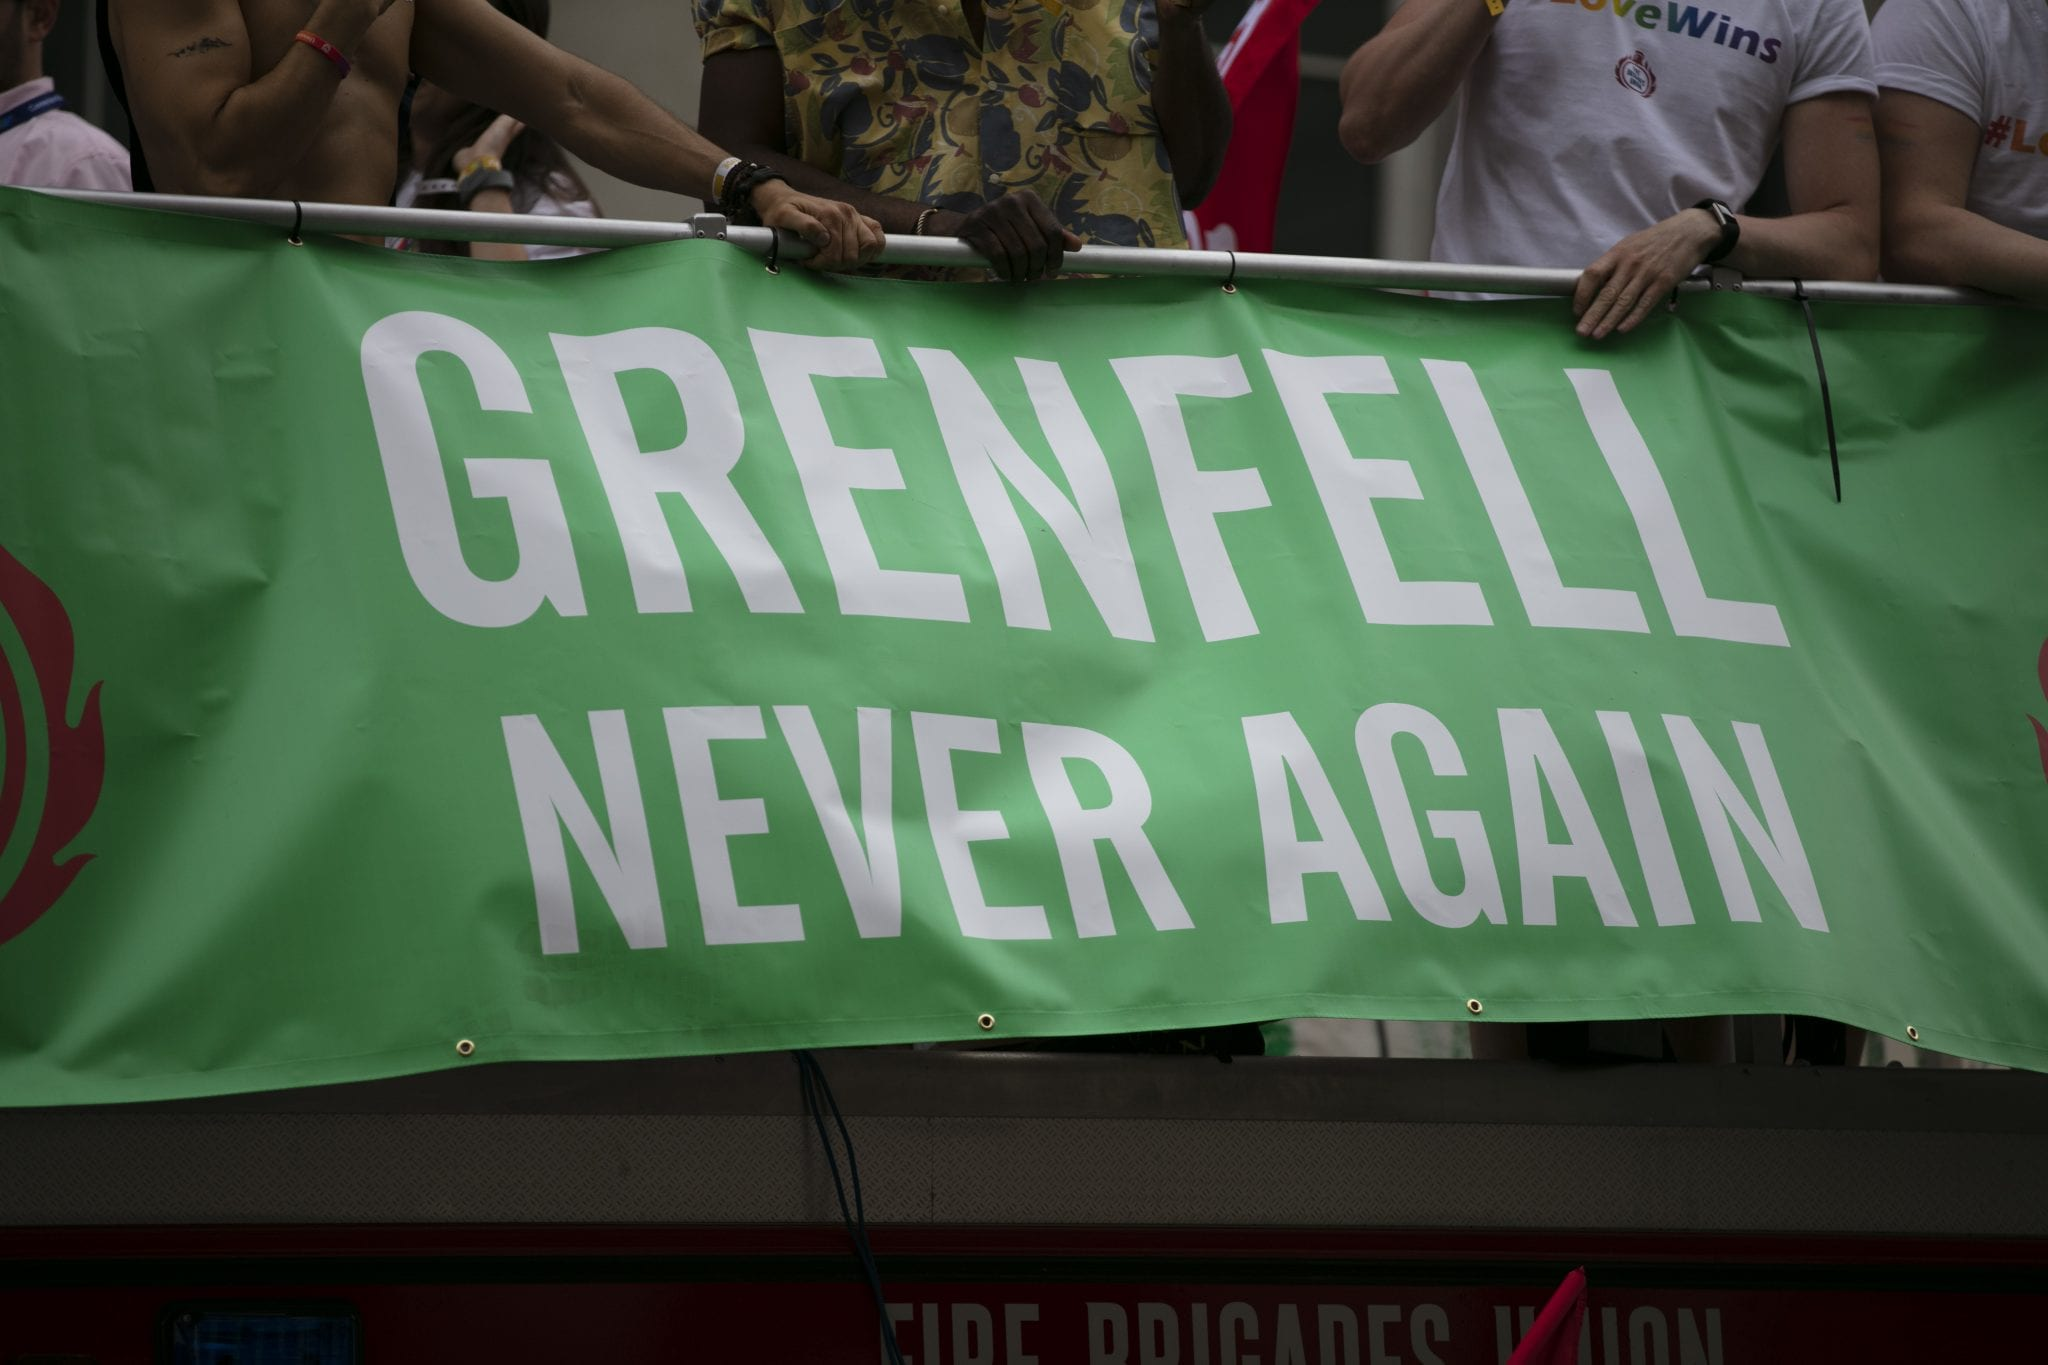 LONDON, UK – July 6th 2019: People hold a Grenfell never again sign in memory of the genfell tower disaster